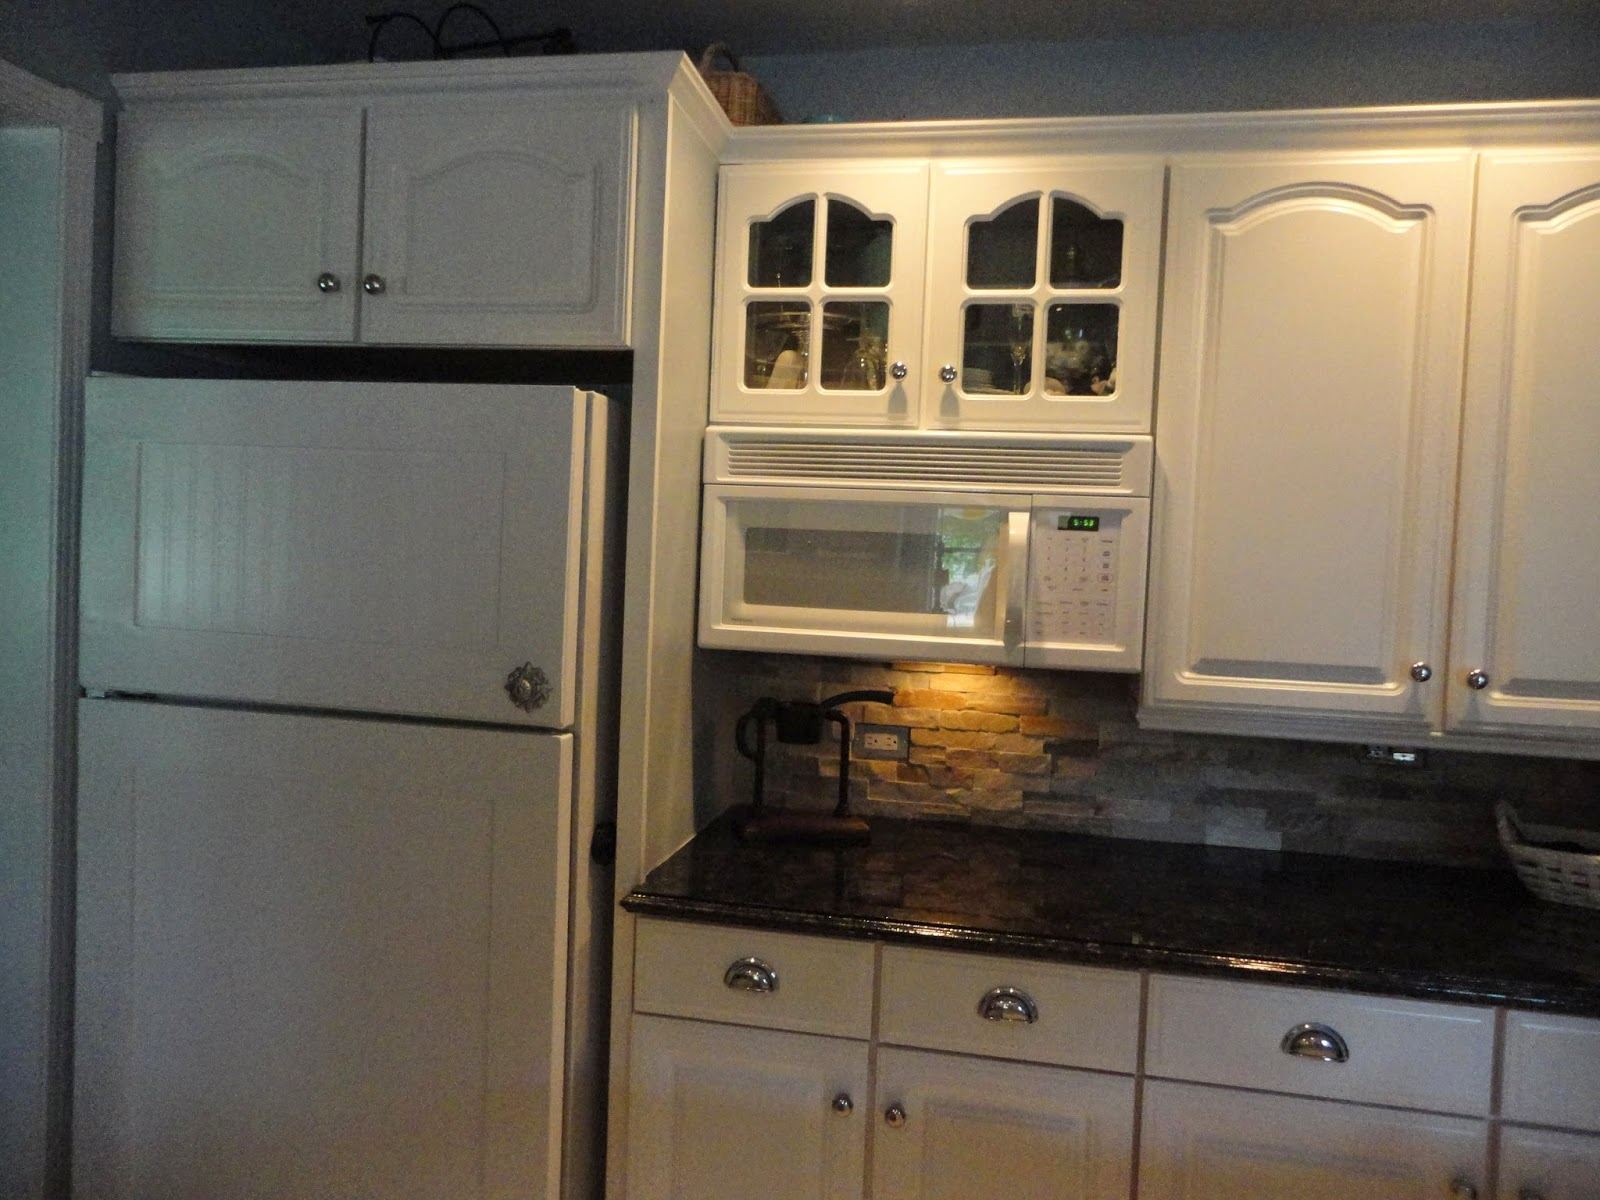 General Splendour Ugly Refrigerator Makeover With WALLPAPER